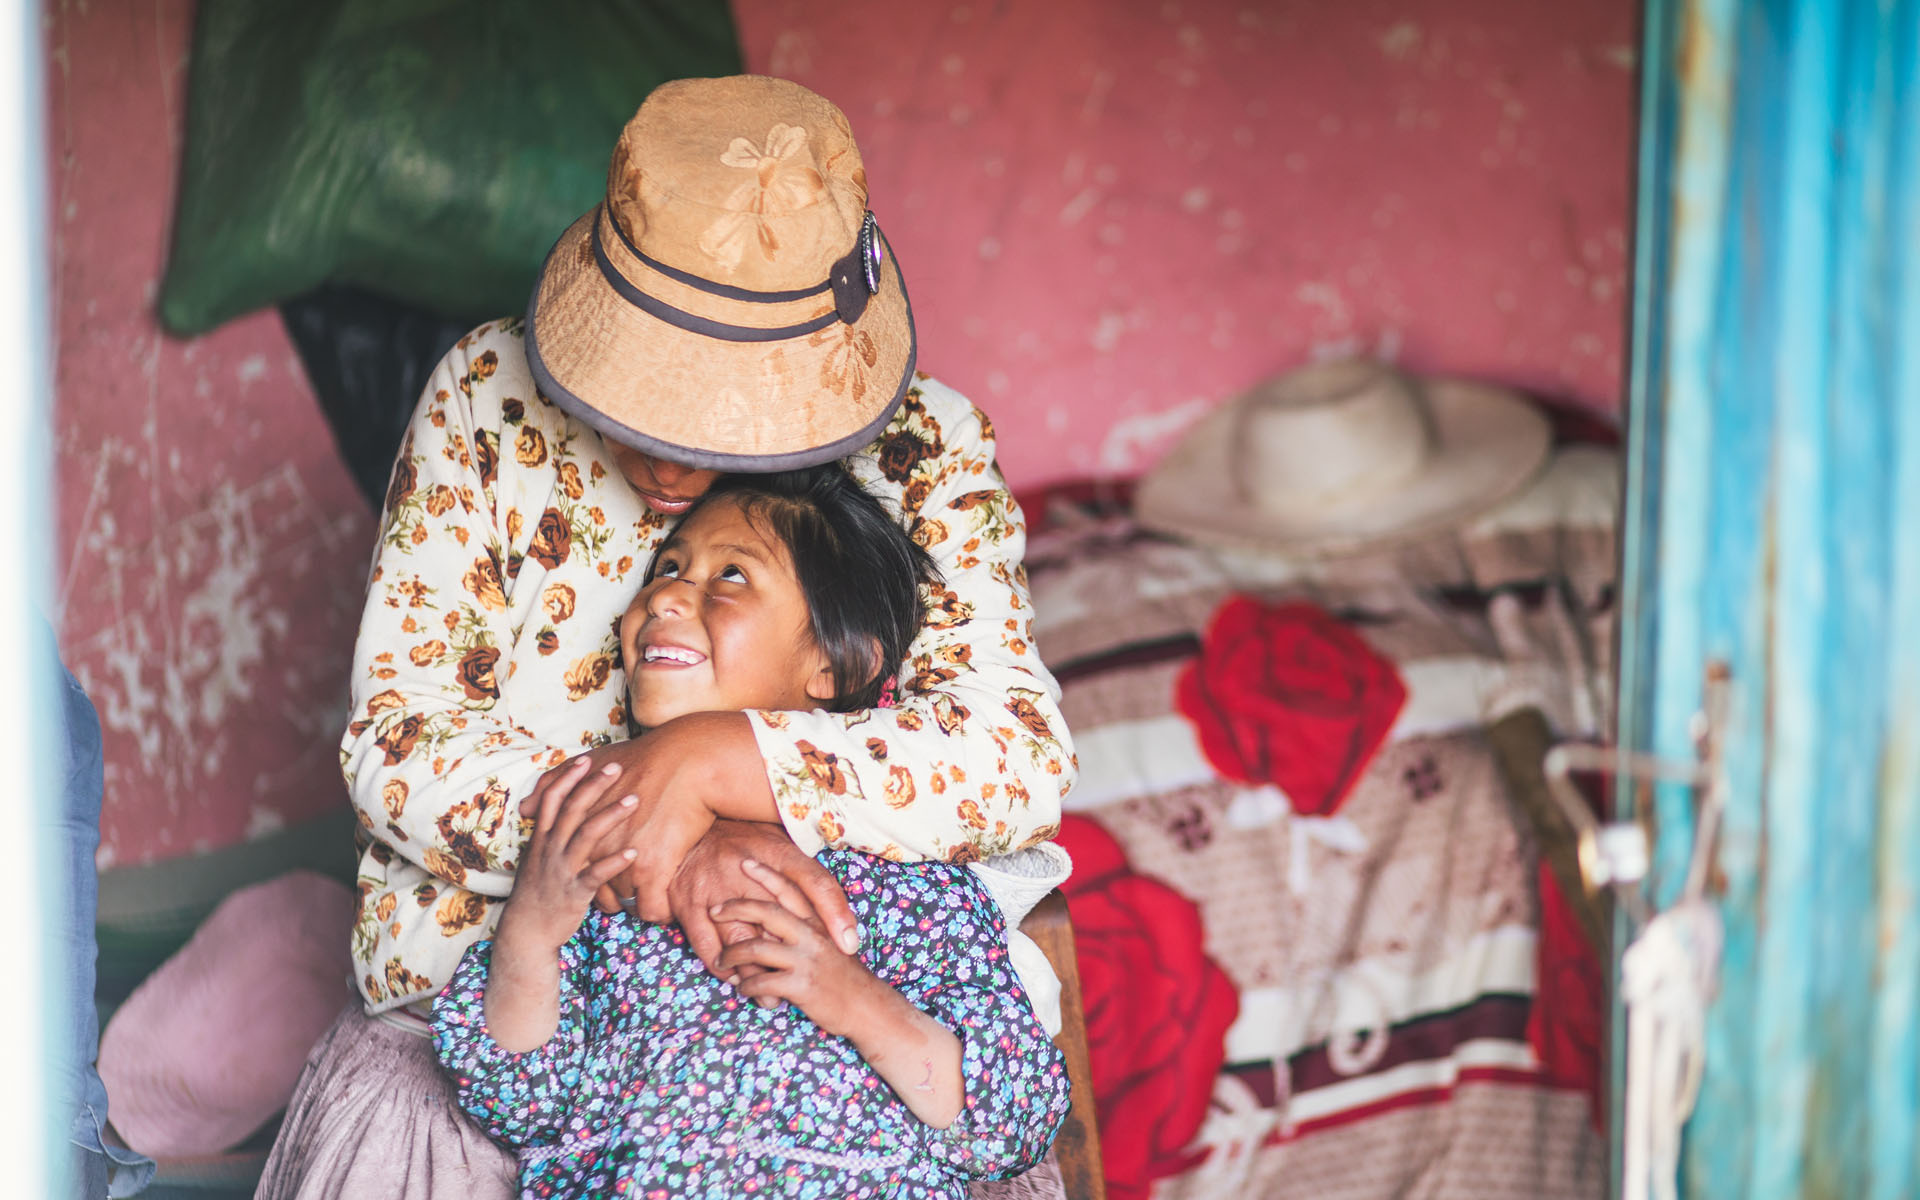 A girl in Compassion's program snuggles up to her mom in their Bolivian home.